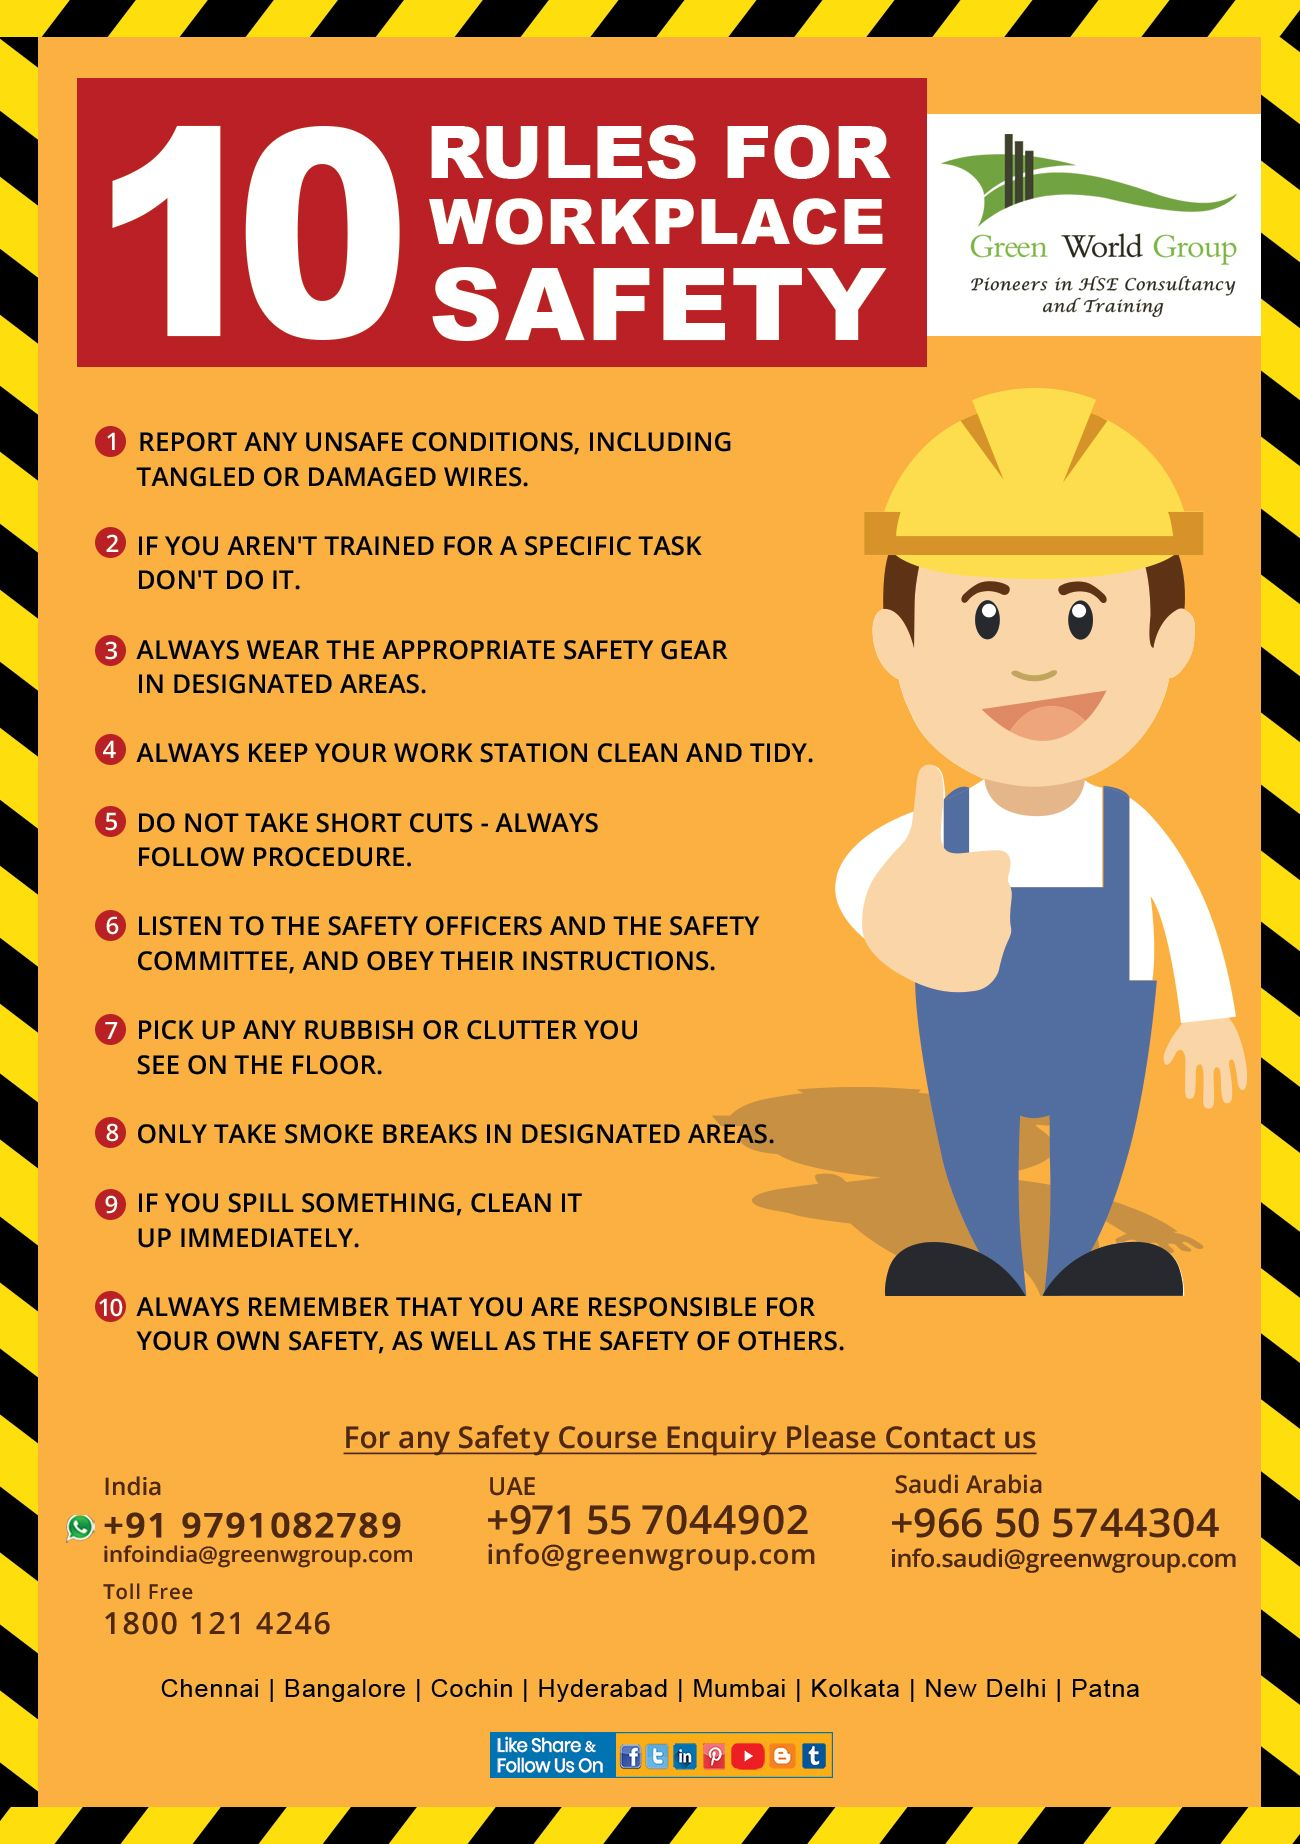 A workplacesafety culture and these 10 tips can help